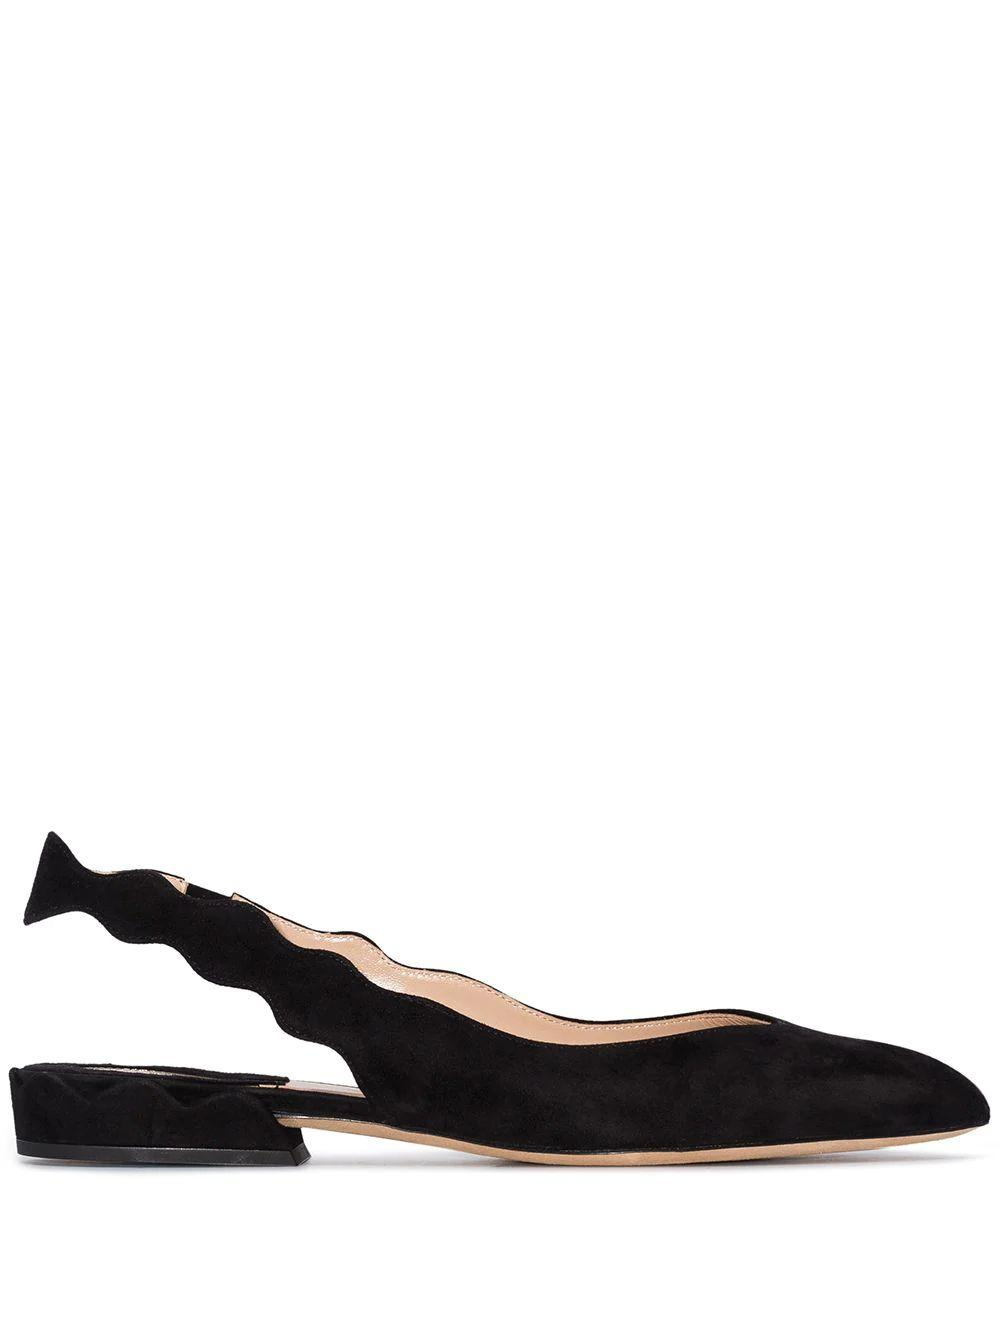 Lauren Scallop 20mm Suede Slingback Ball